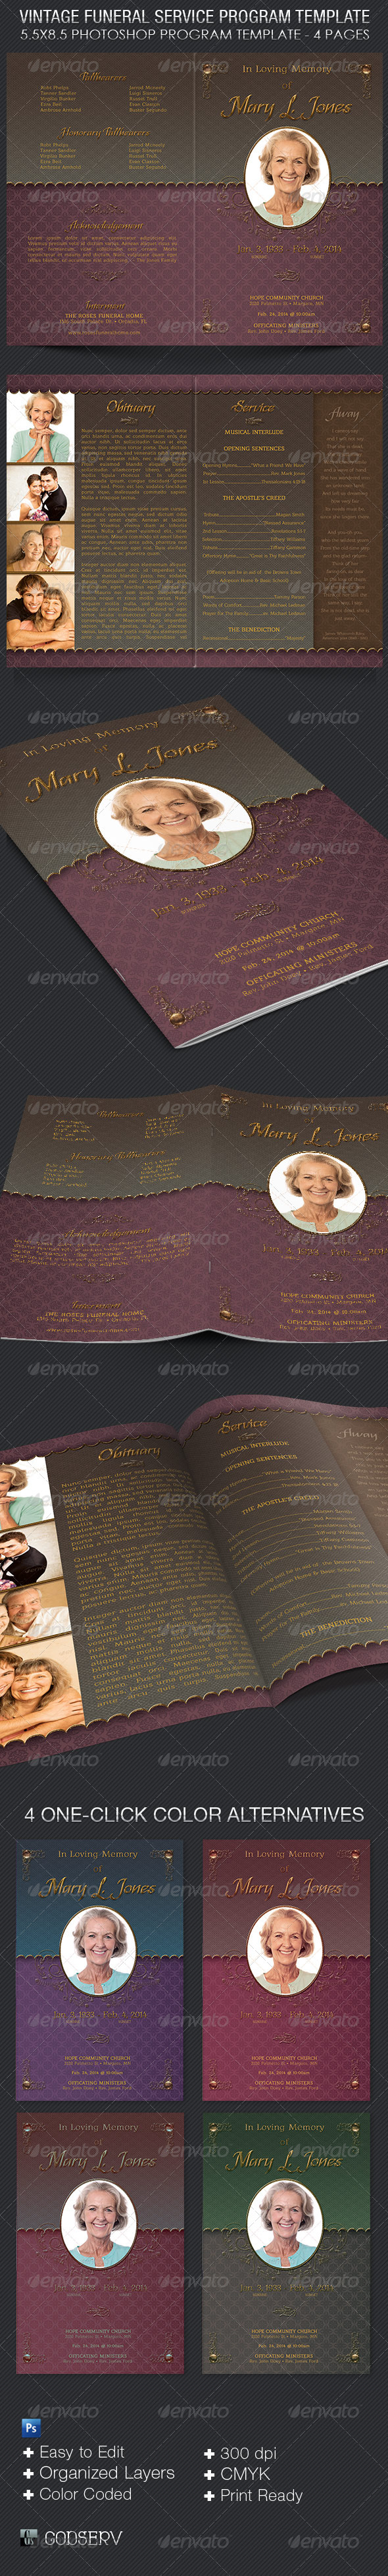 GraphicRiver Vintage Funeral Service Program Template 7087255